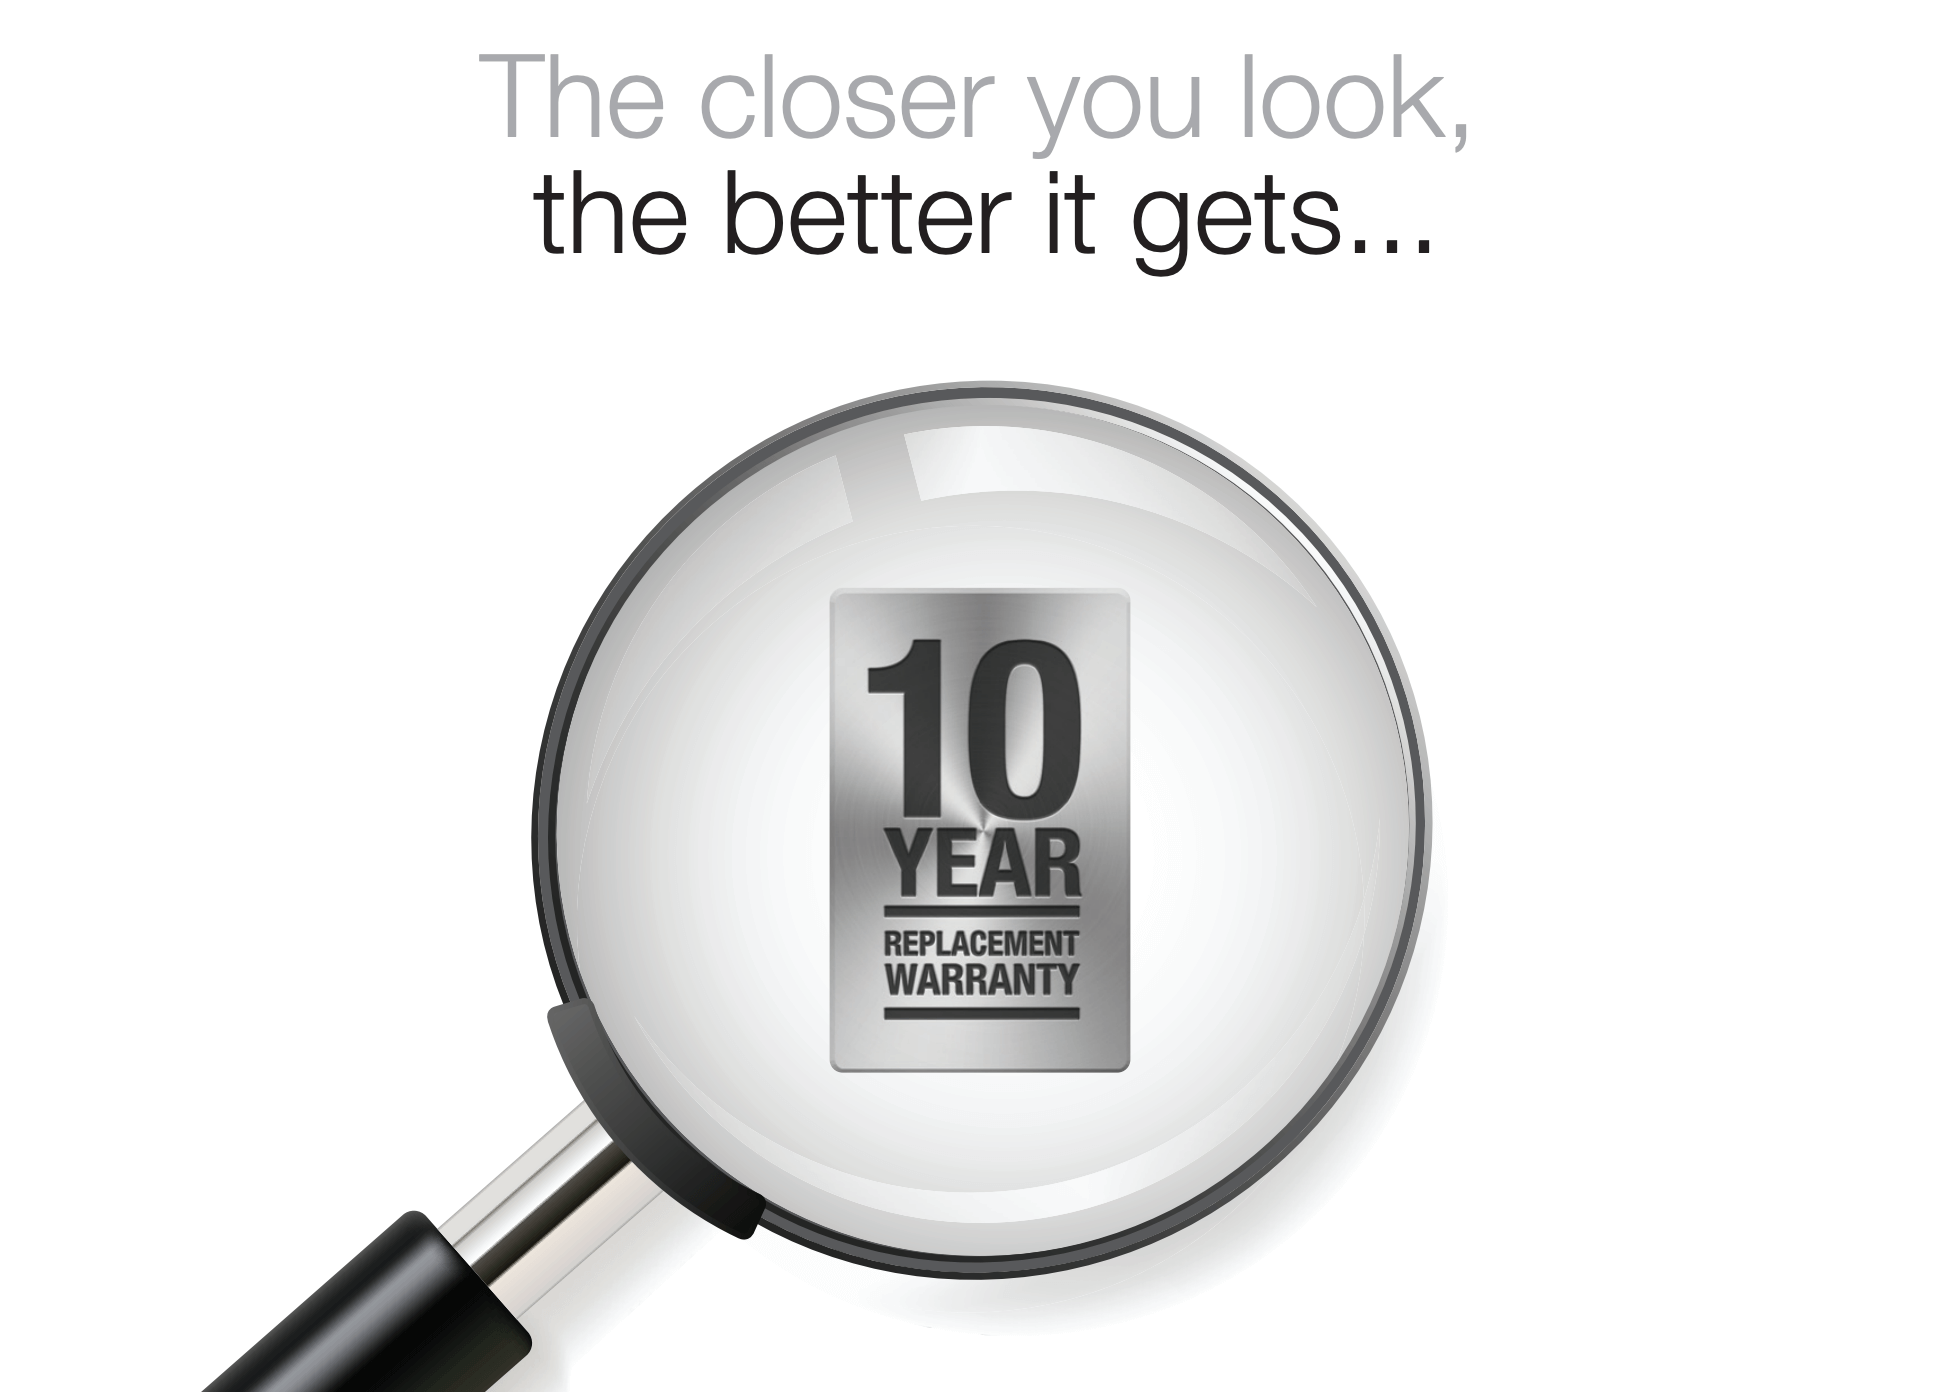 Security Screens QLD Prowler Proof Services - Prowler 10 Years Replacement Warranty in Magnifying Glass